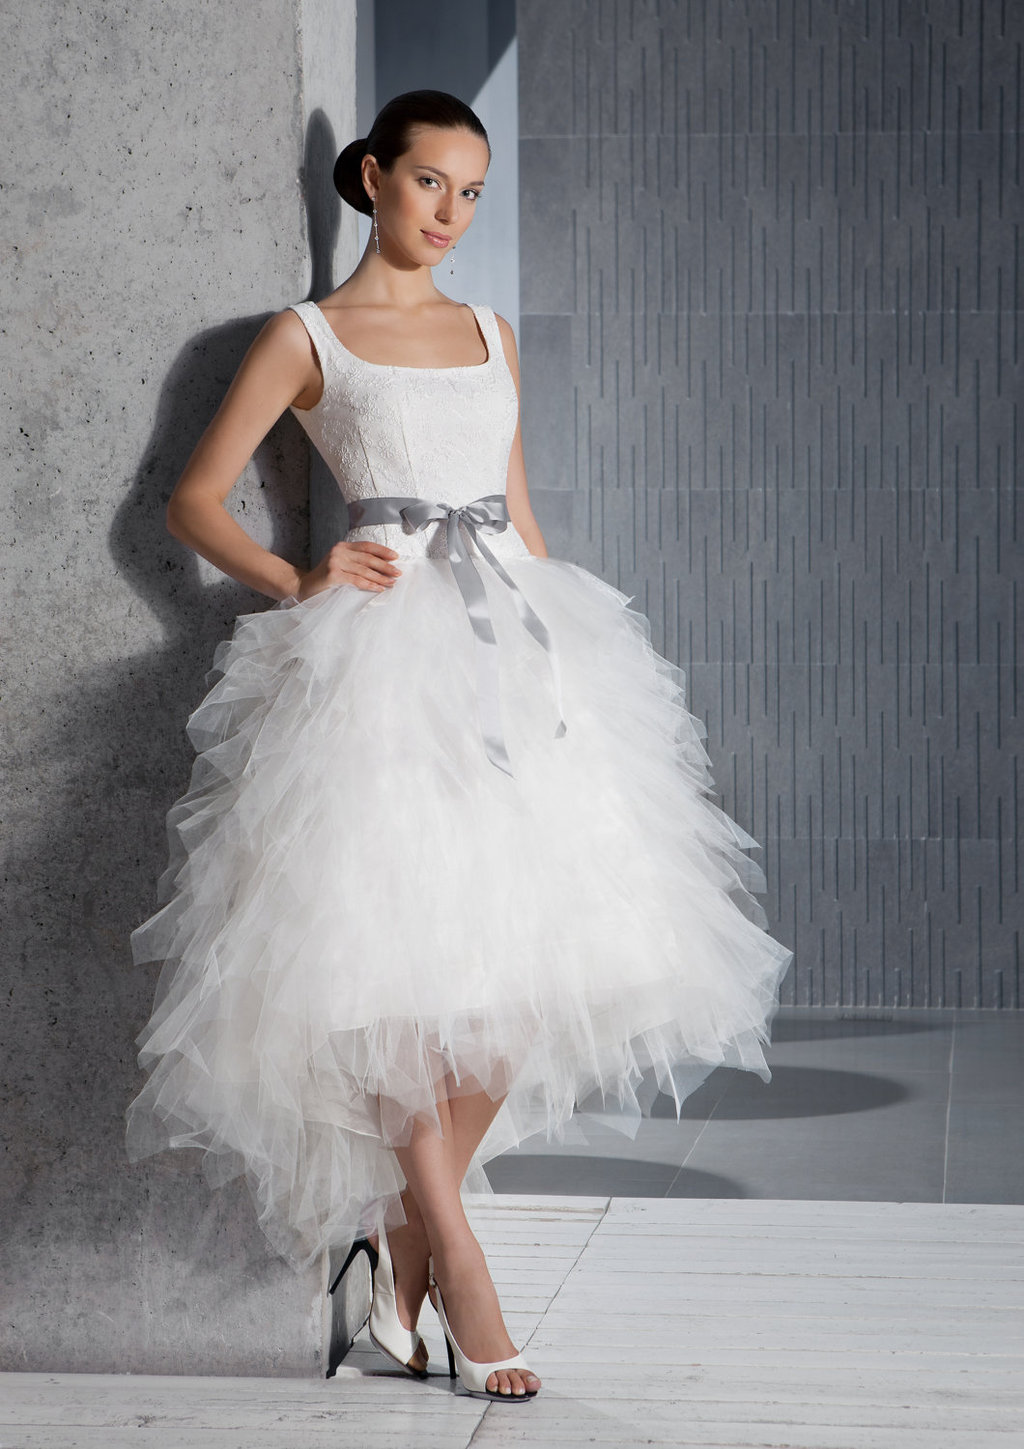 spring 2012 romantic wedding dress tea length tulle structured bodice with sash